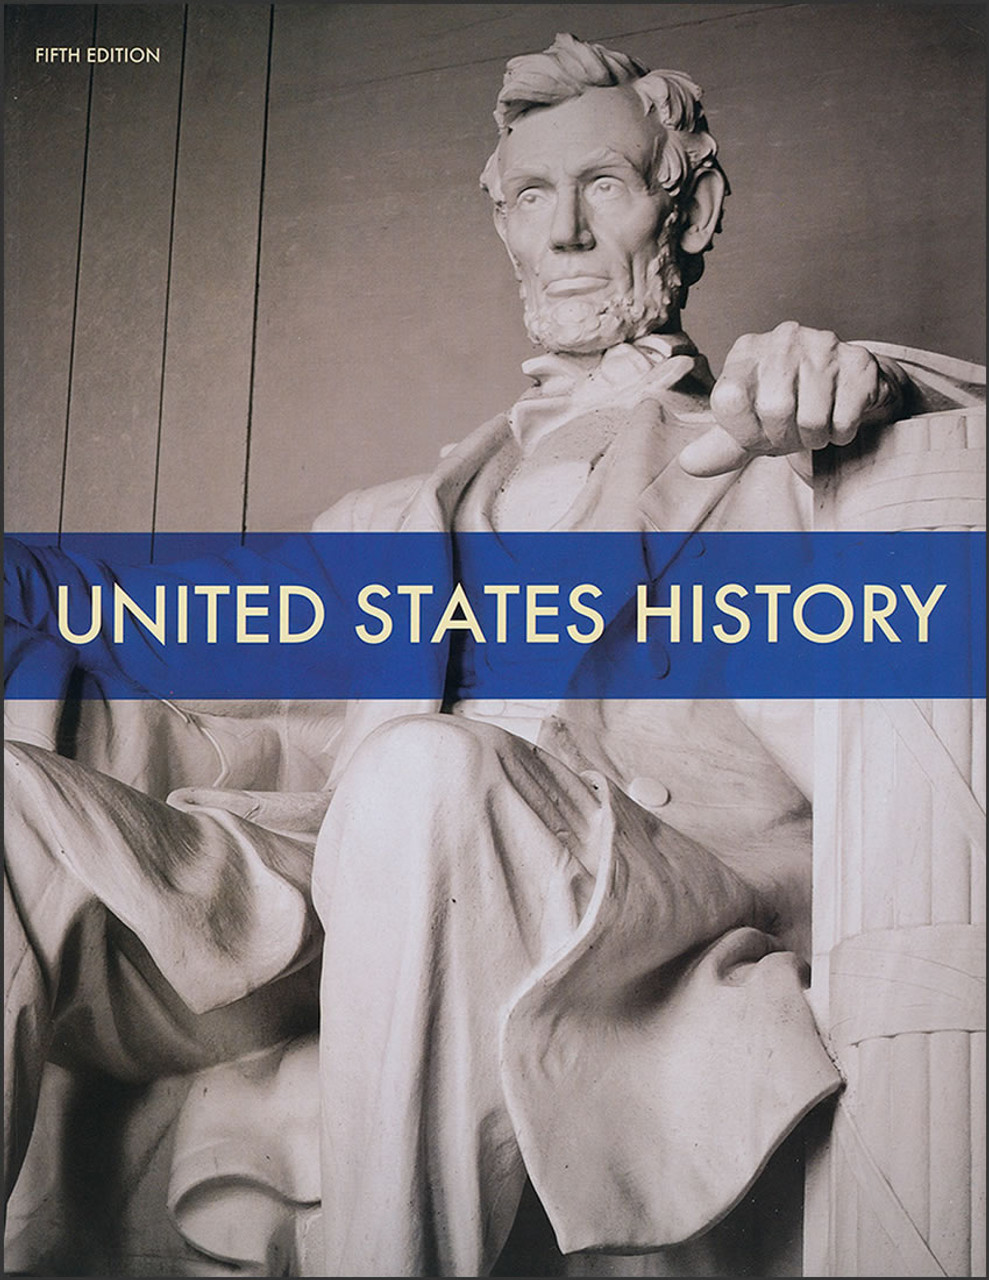 United States History, 5th edition